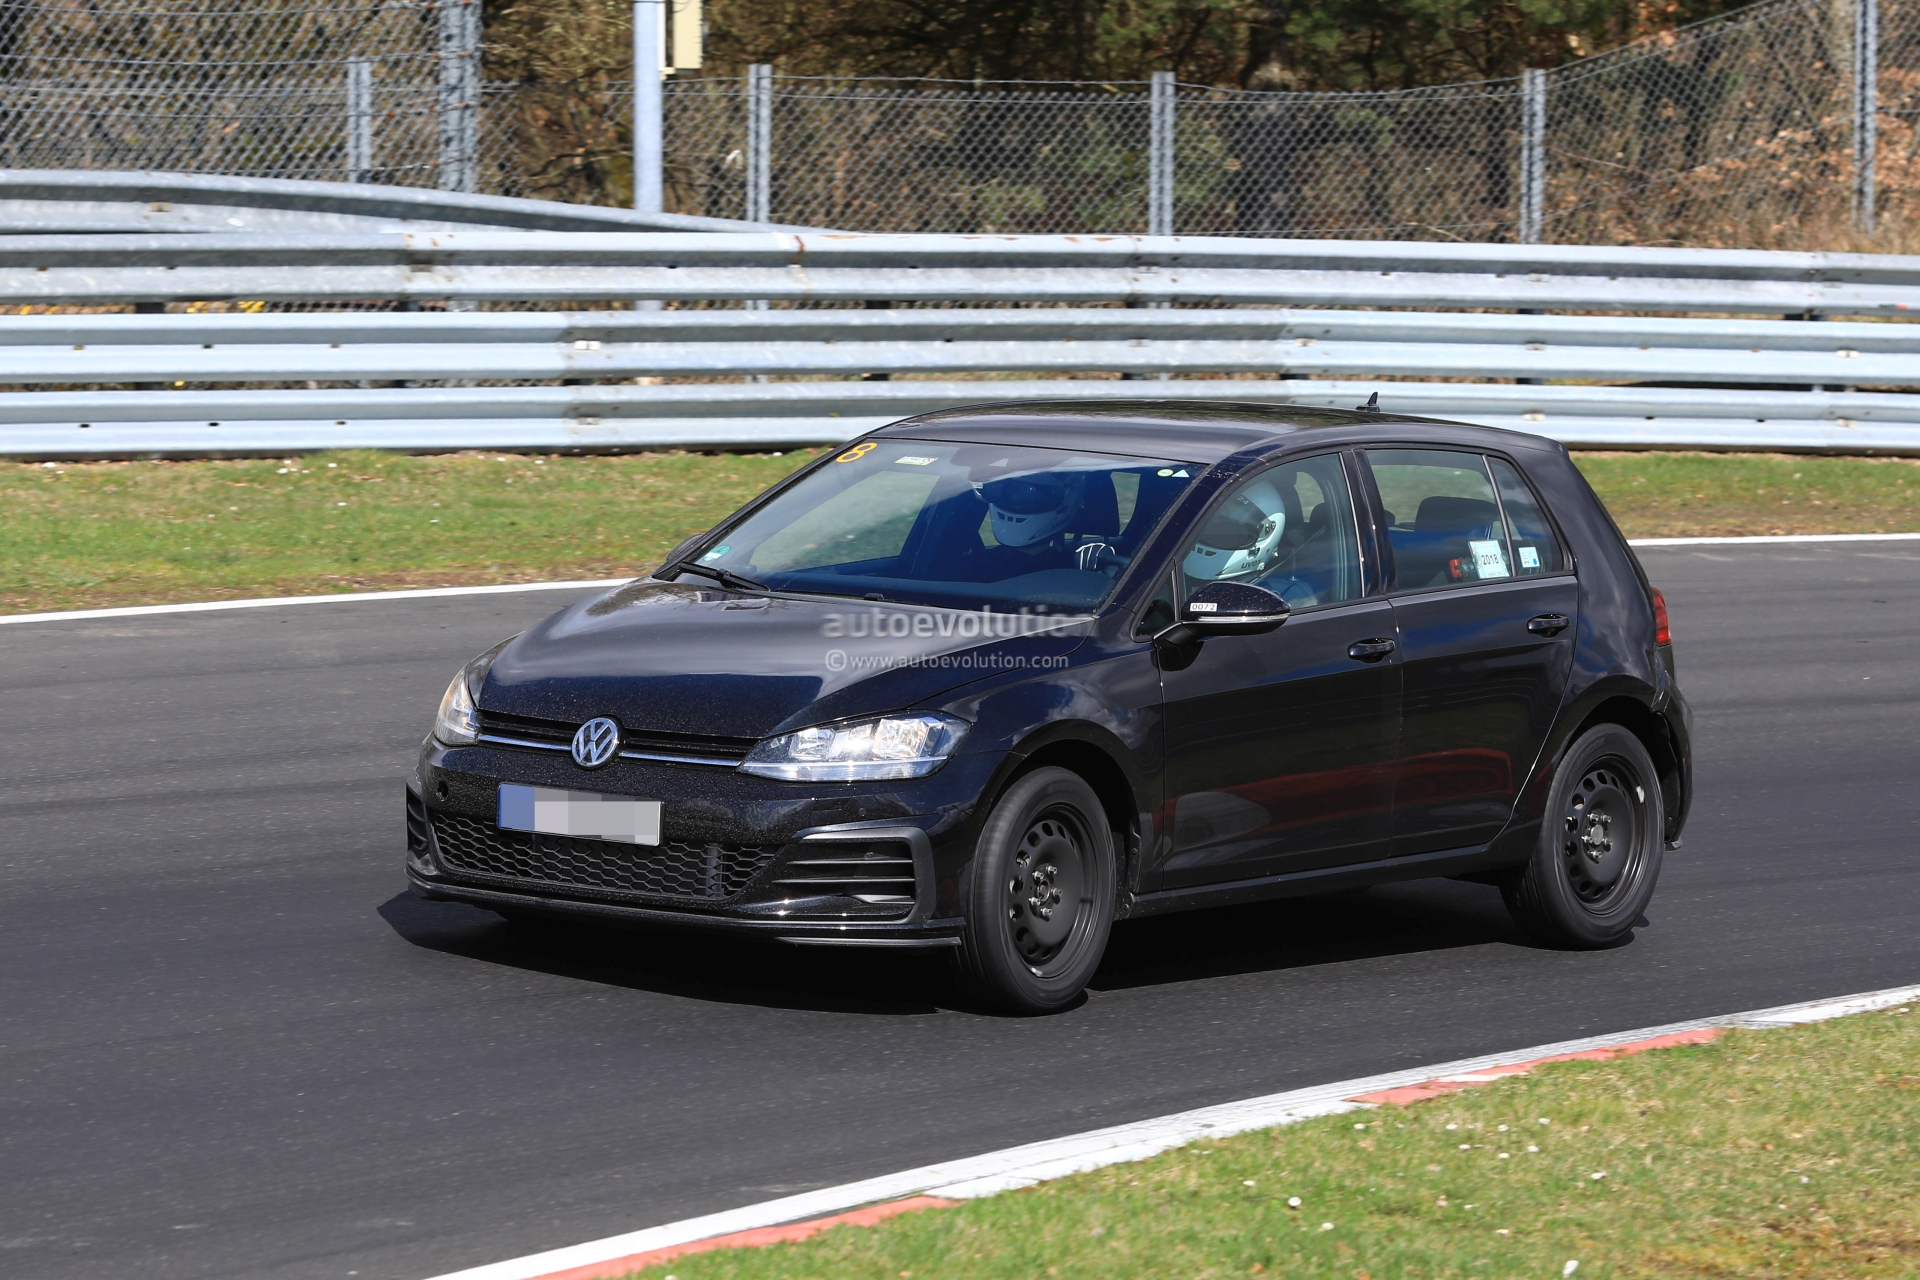 spyshots volkswagen golf 8 hits nurburgring shows new gear selector autoevolution. Black Bedroom Furniture Sets. Home Design Ideas